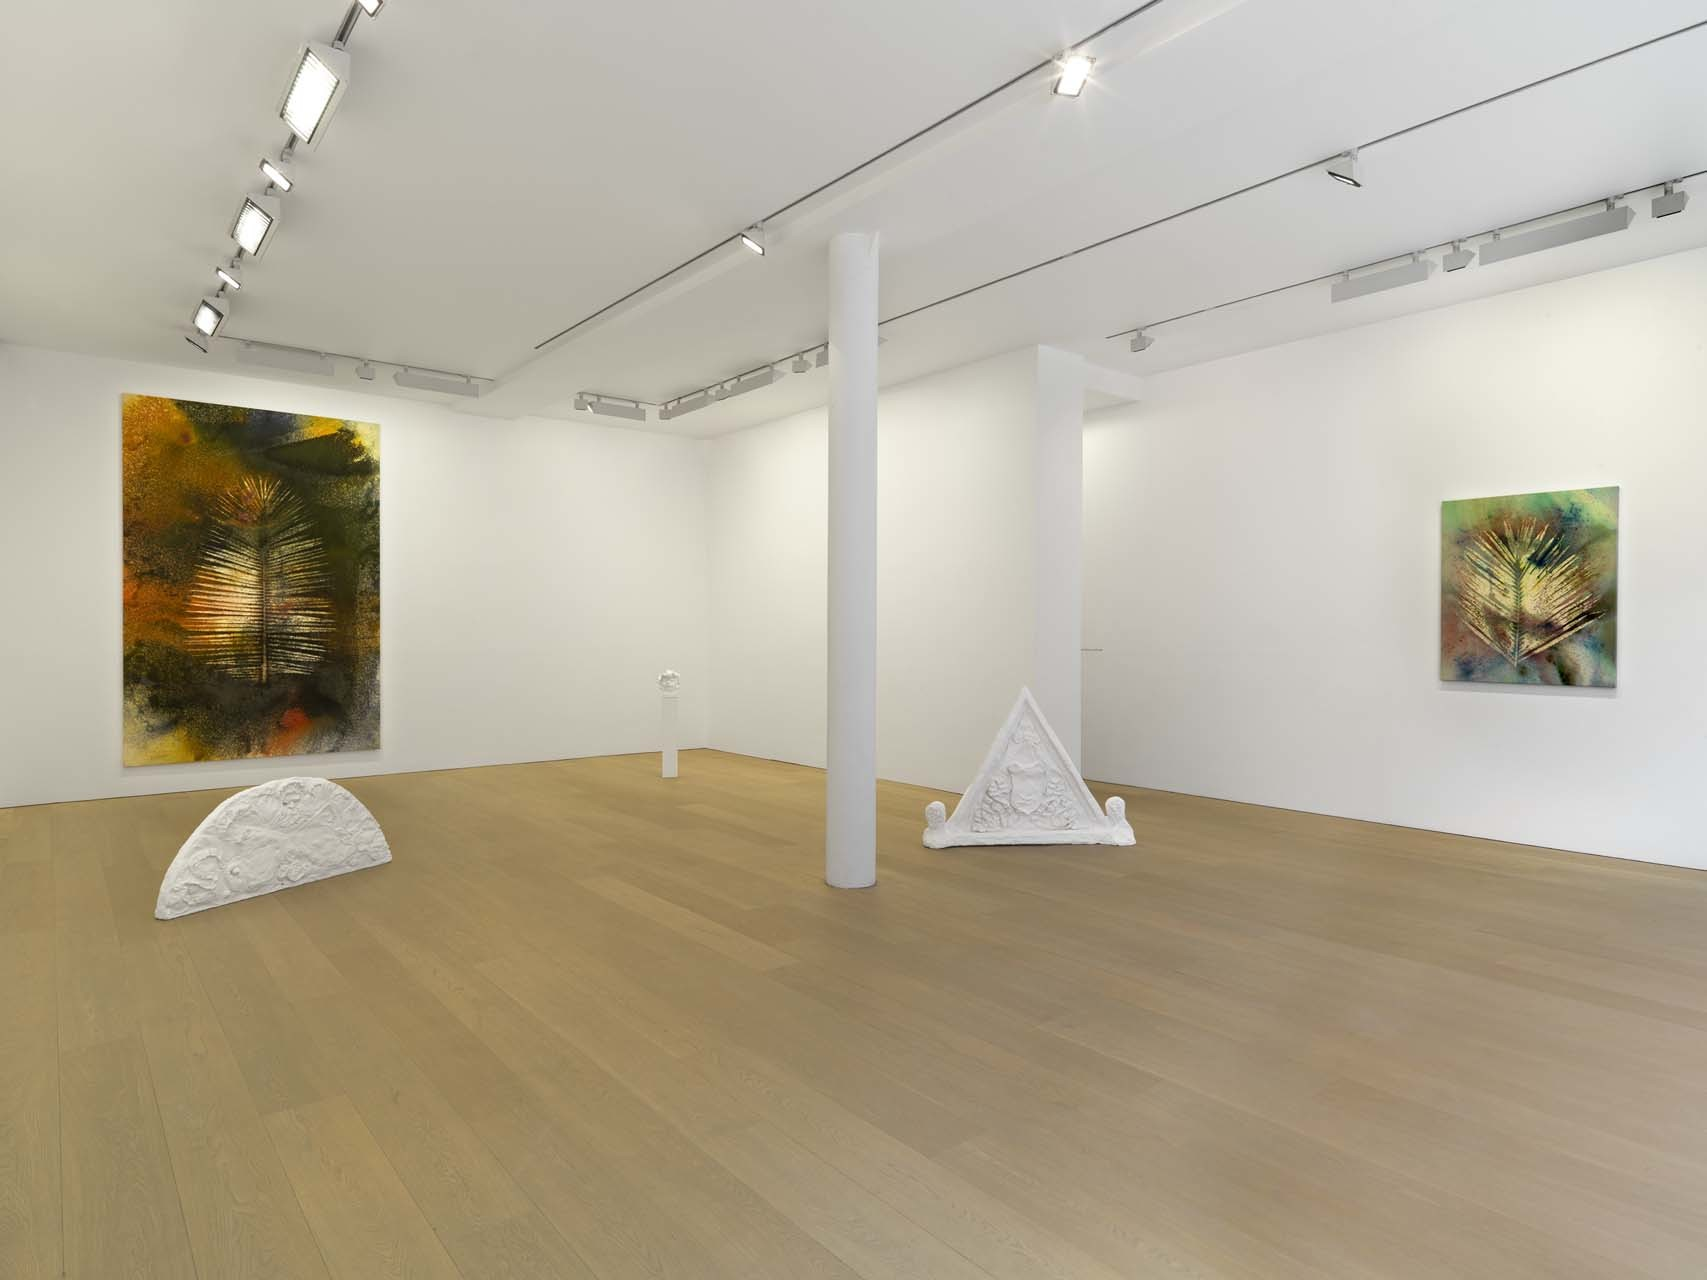 "<div class=""artwork_caption""><p>Installation view, 2014</p></div>"